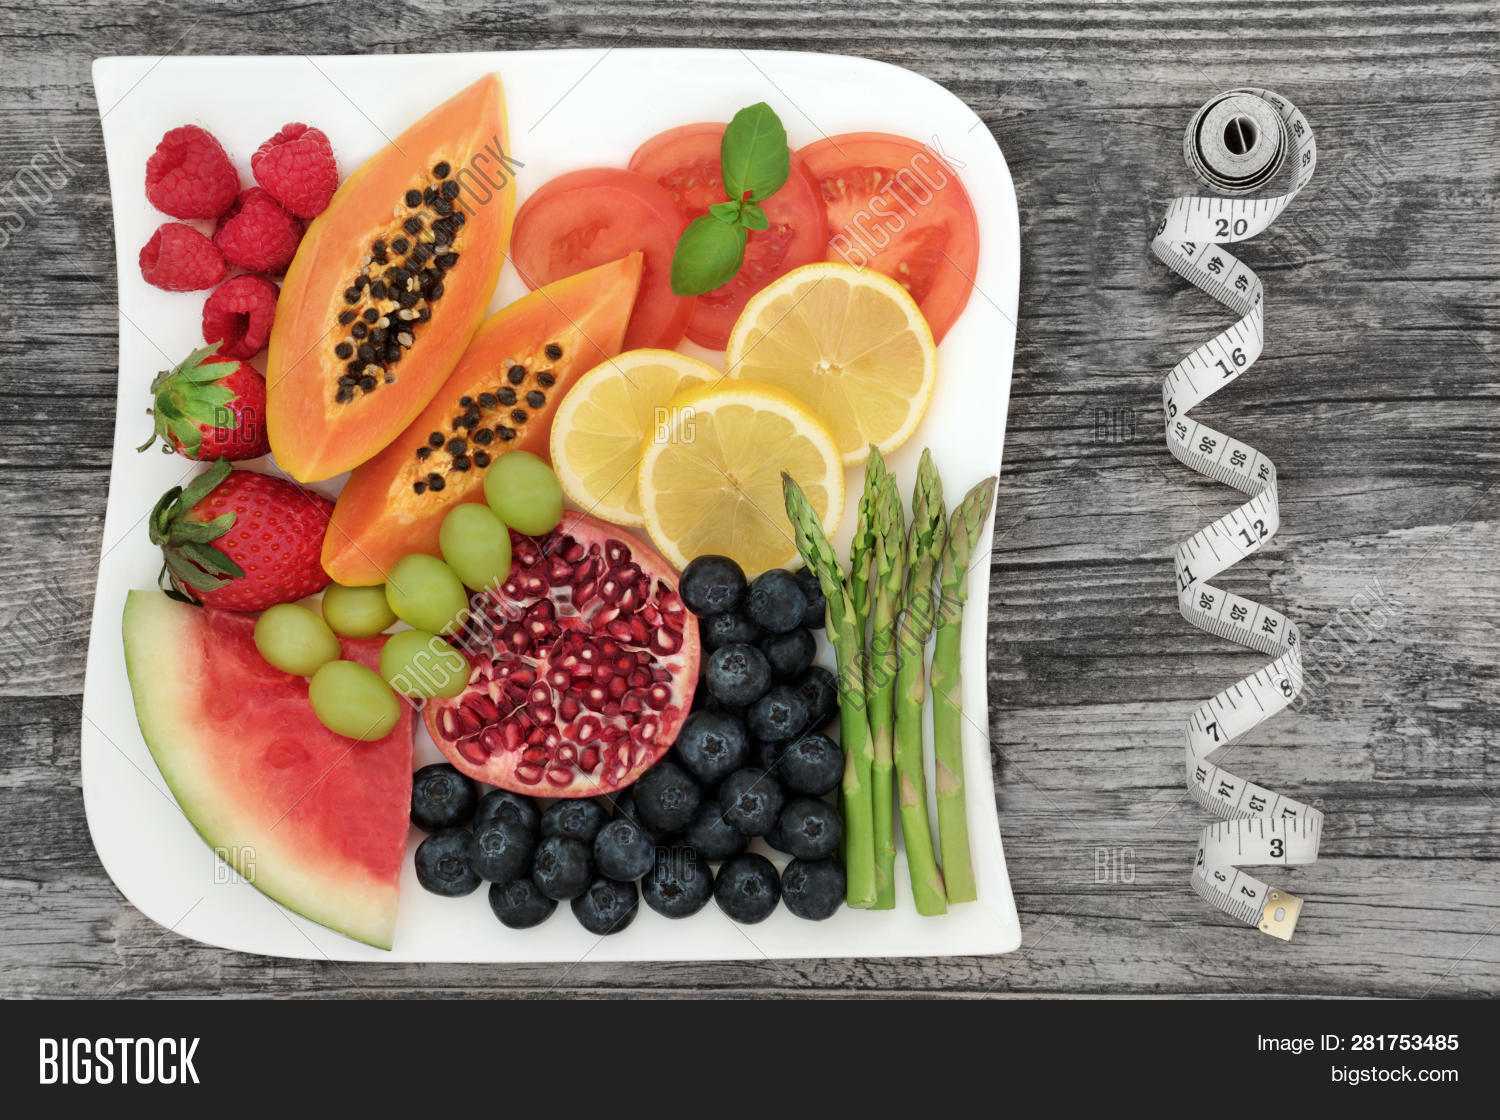 Groovy Healthy Eating Losing Image Photo Free Trial Bigstock Download Free Architecture Designs Scobabritishbridgeorg